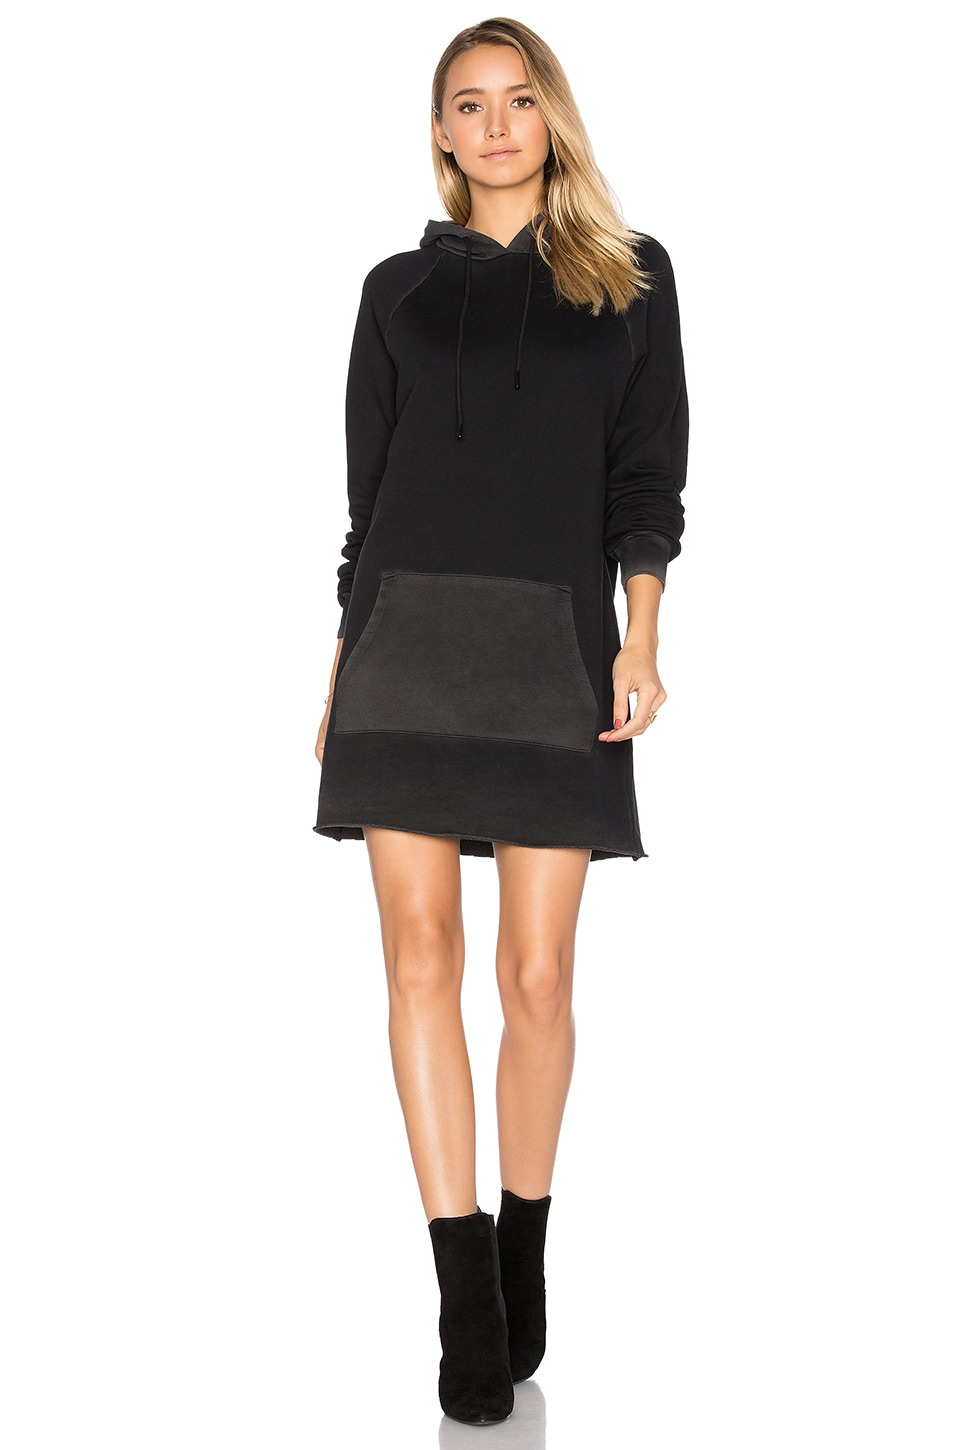 The Milan Long Sleeve Dress by COTTON CITIZEN